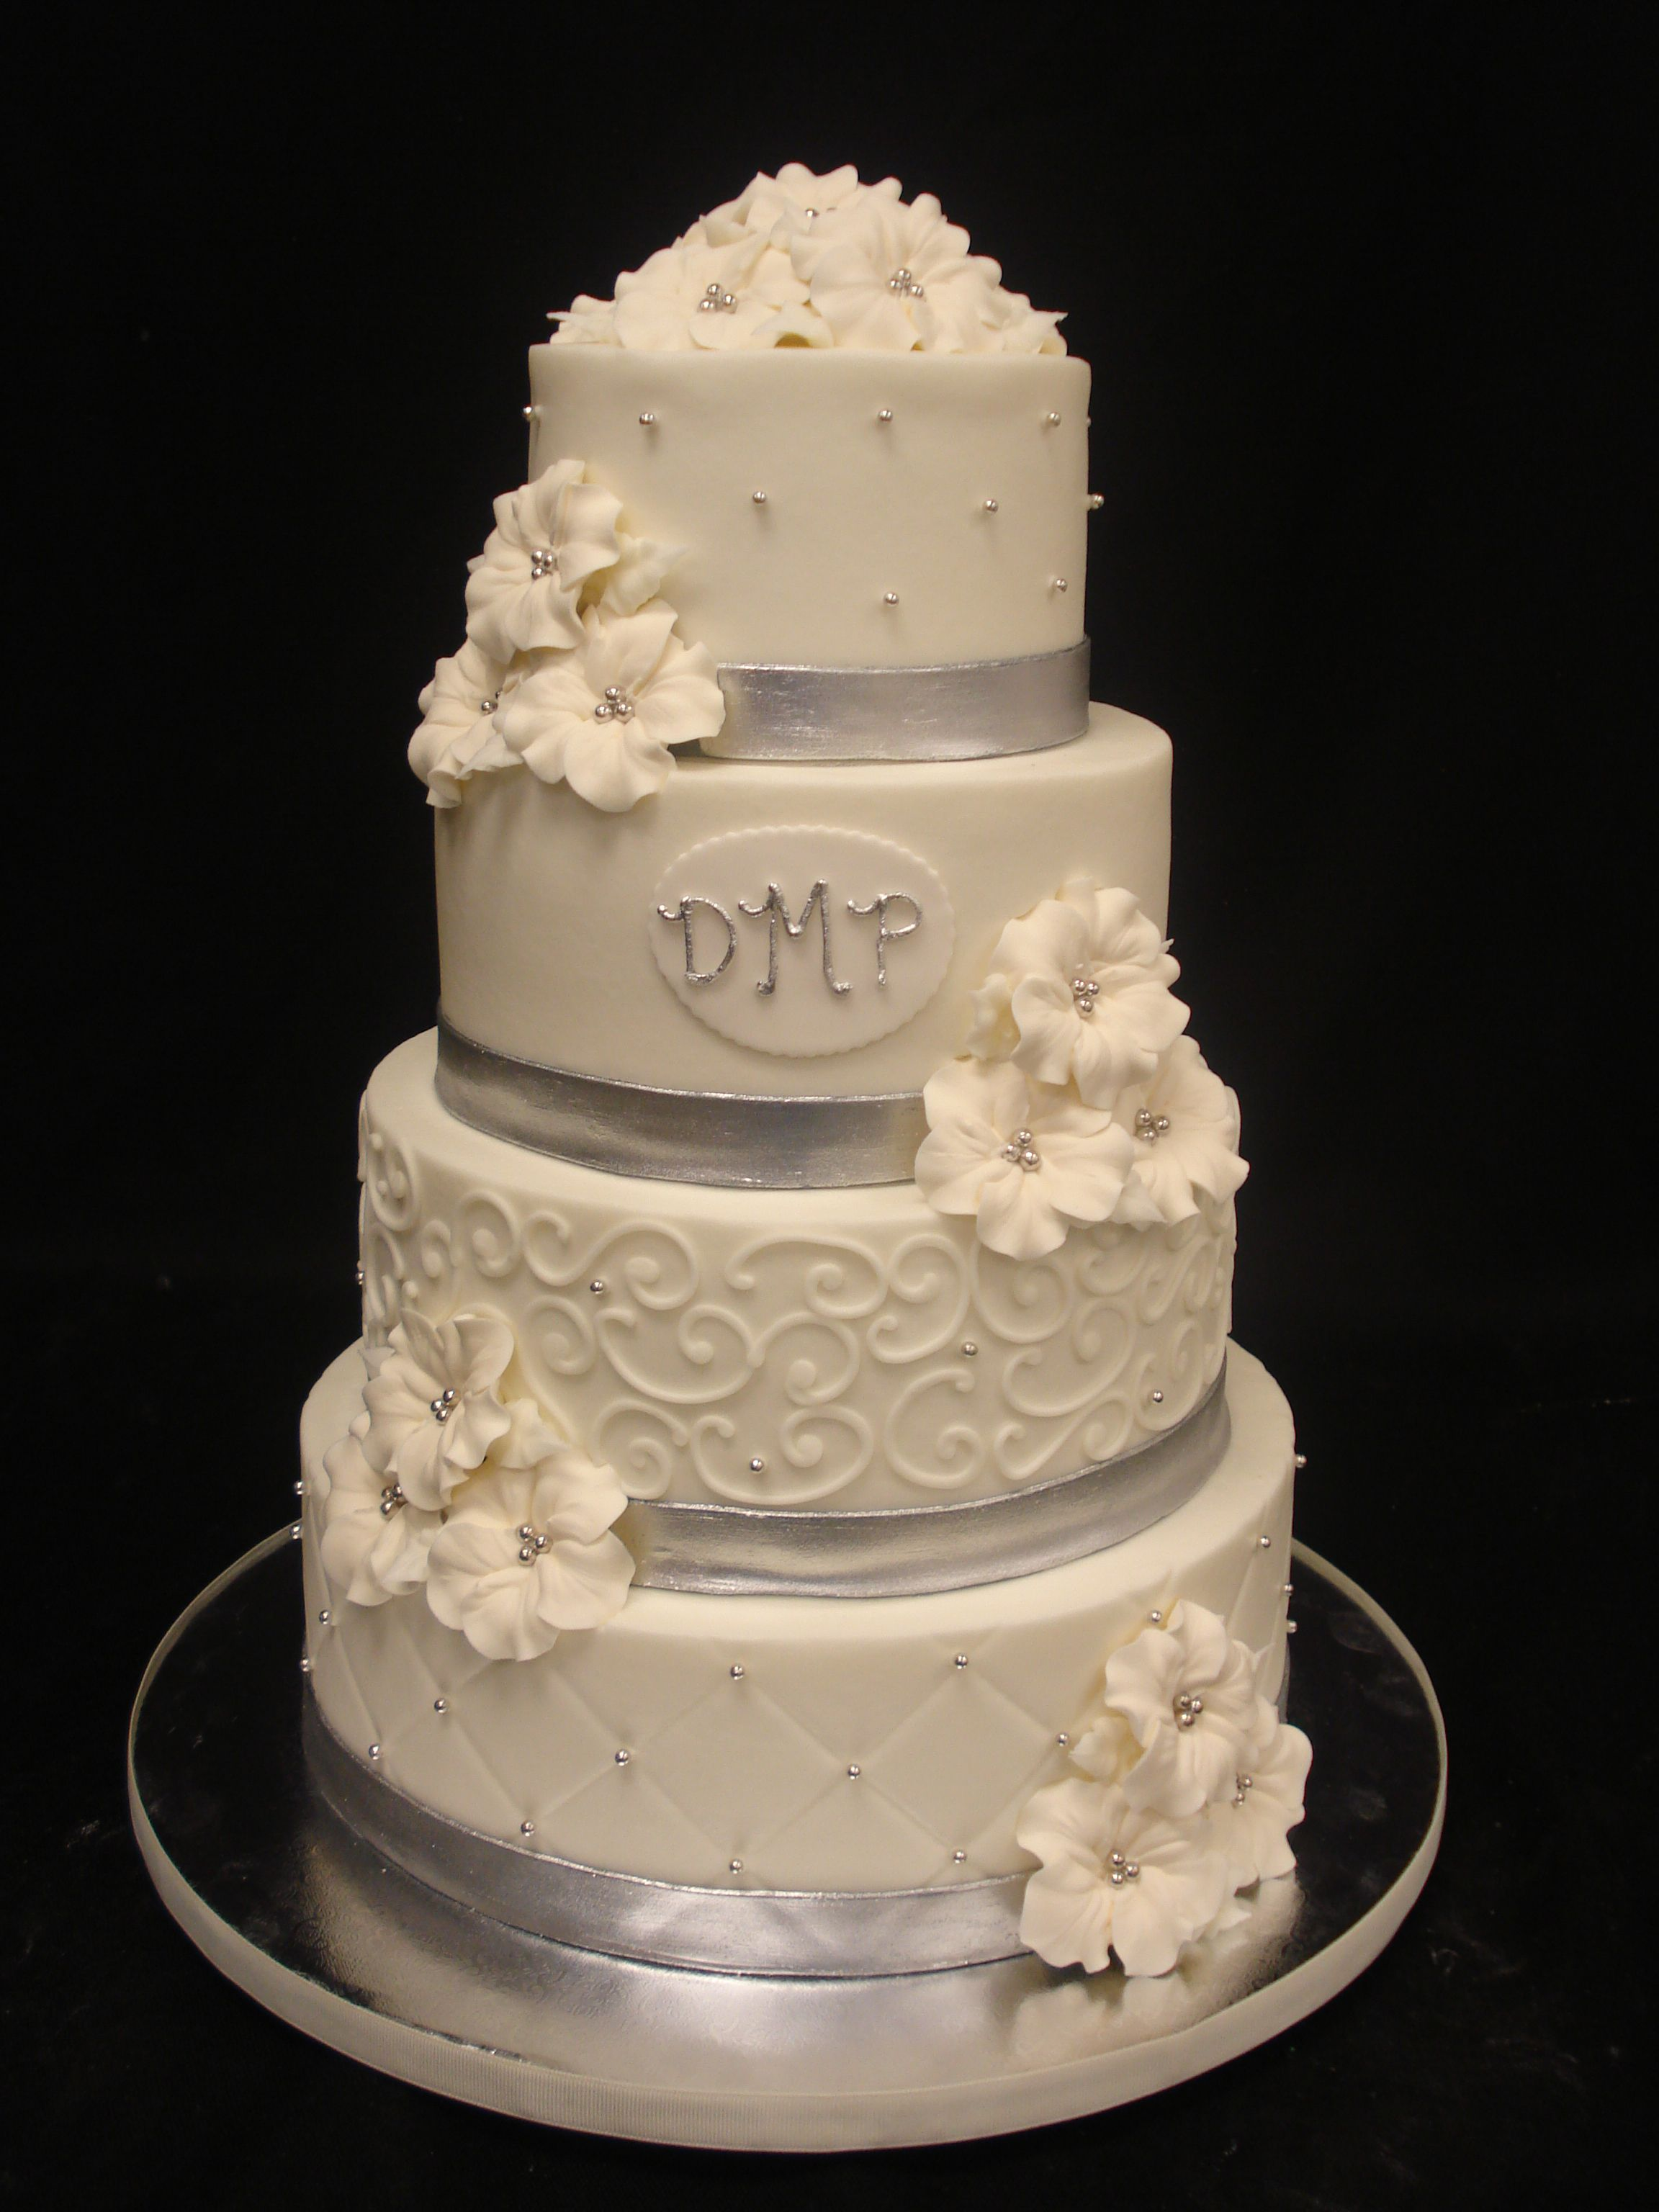 White And Silver Wedding Cake With Monogram Party Flavors Custom Cakes Orlando FL